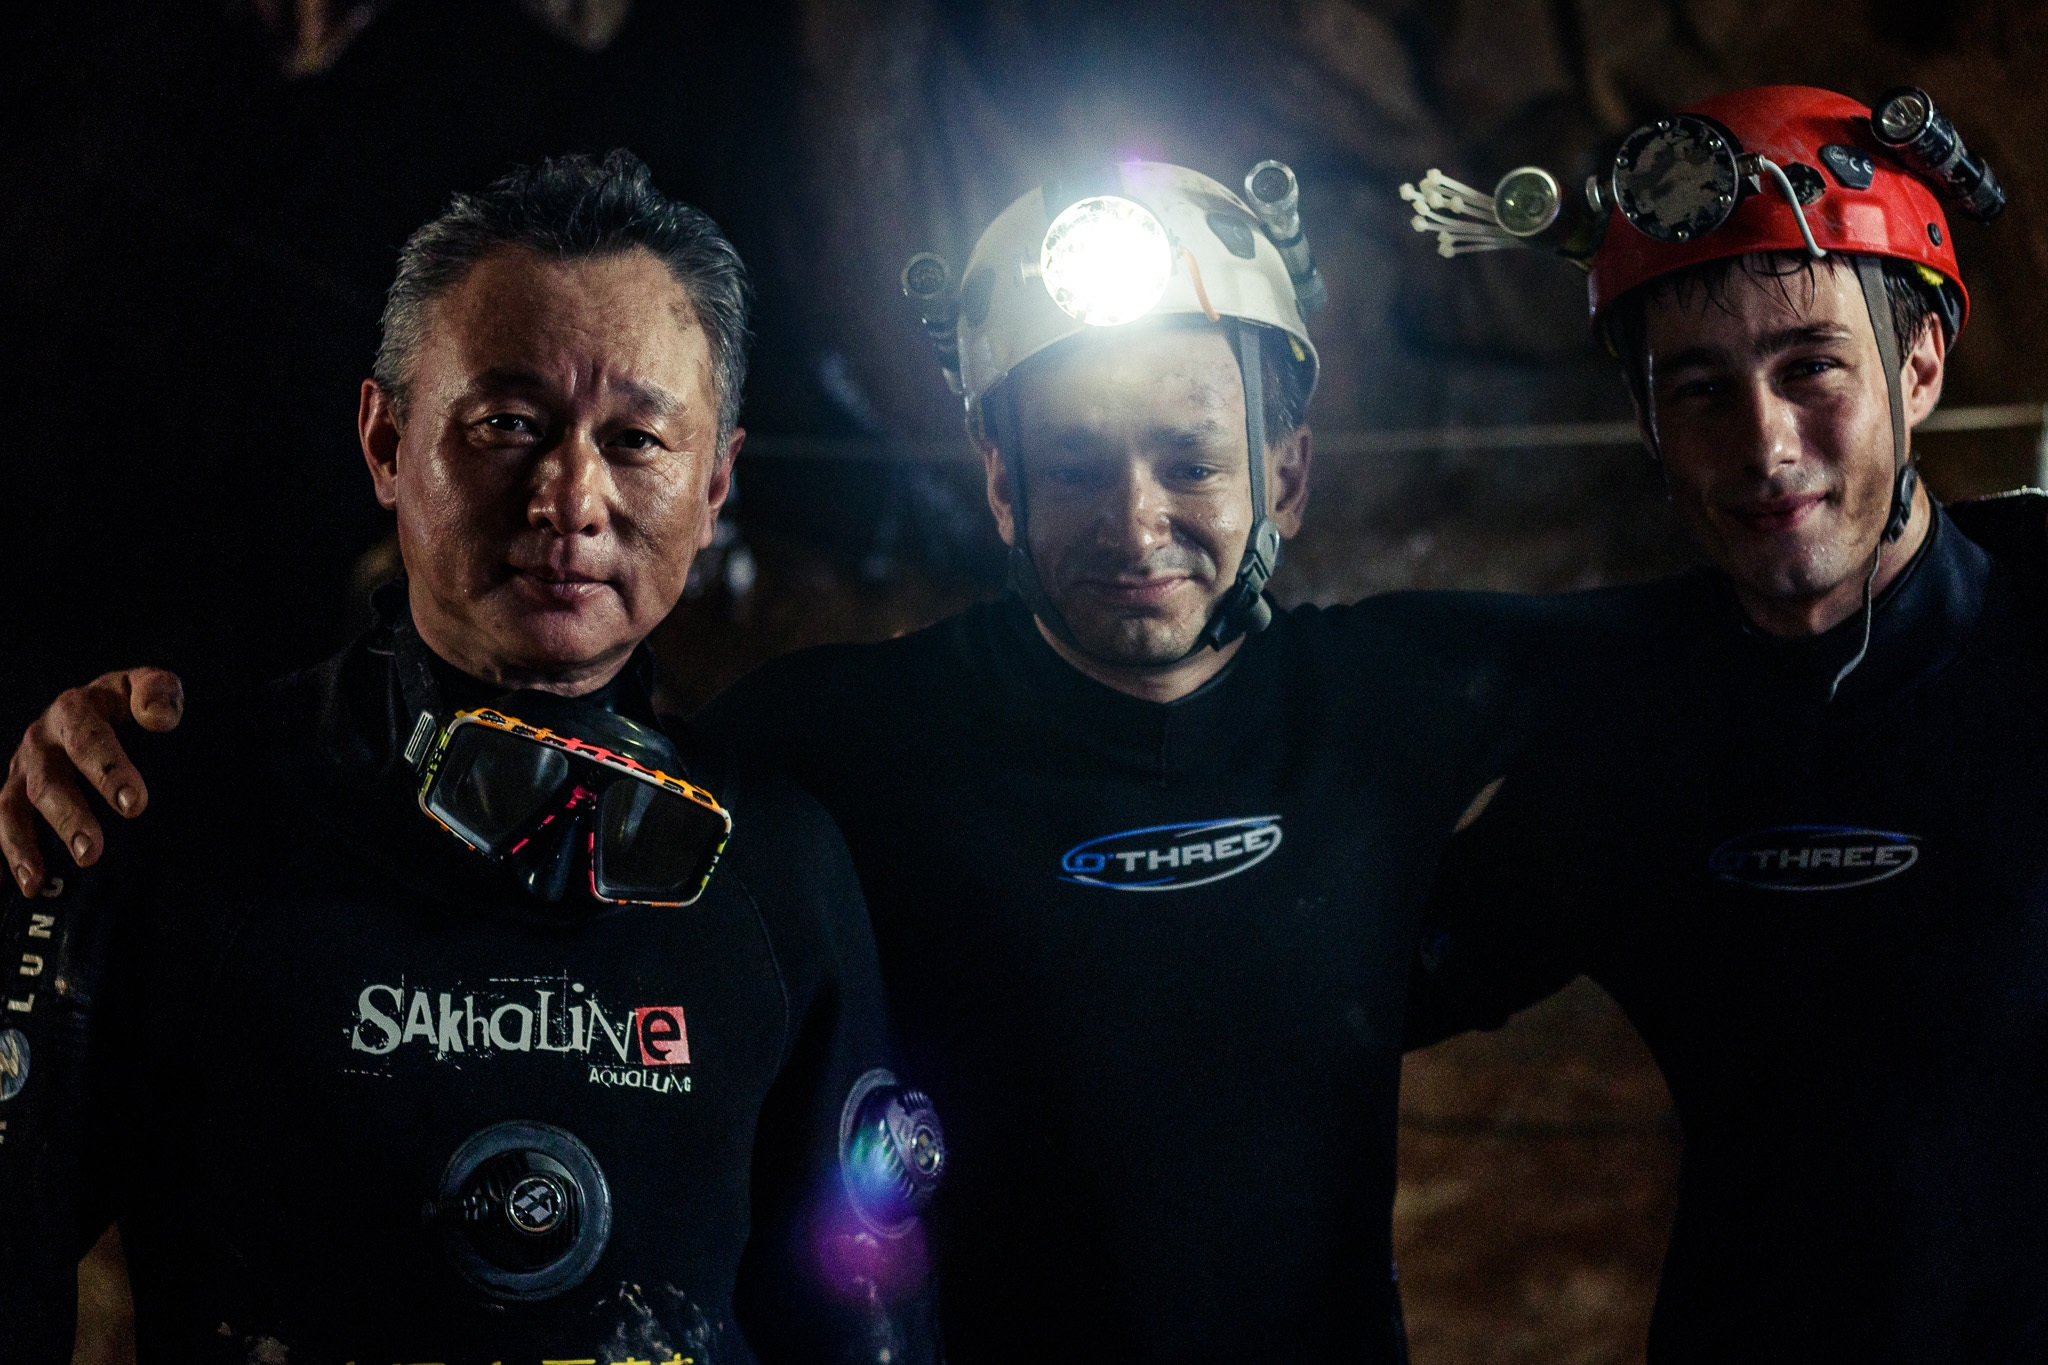 003 - Cave divers Tan Xiaolong, Jim Warny and actor Alex Winslow on the set of writer/director Tom Waller's 'THE CAVE' in Thailand. Photo by Fredrik Divall (c) De Warrenne Pictures Co. Ltd. All Rights Reserved.